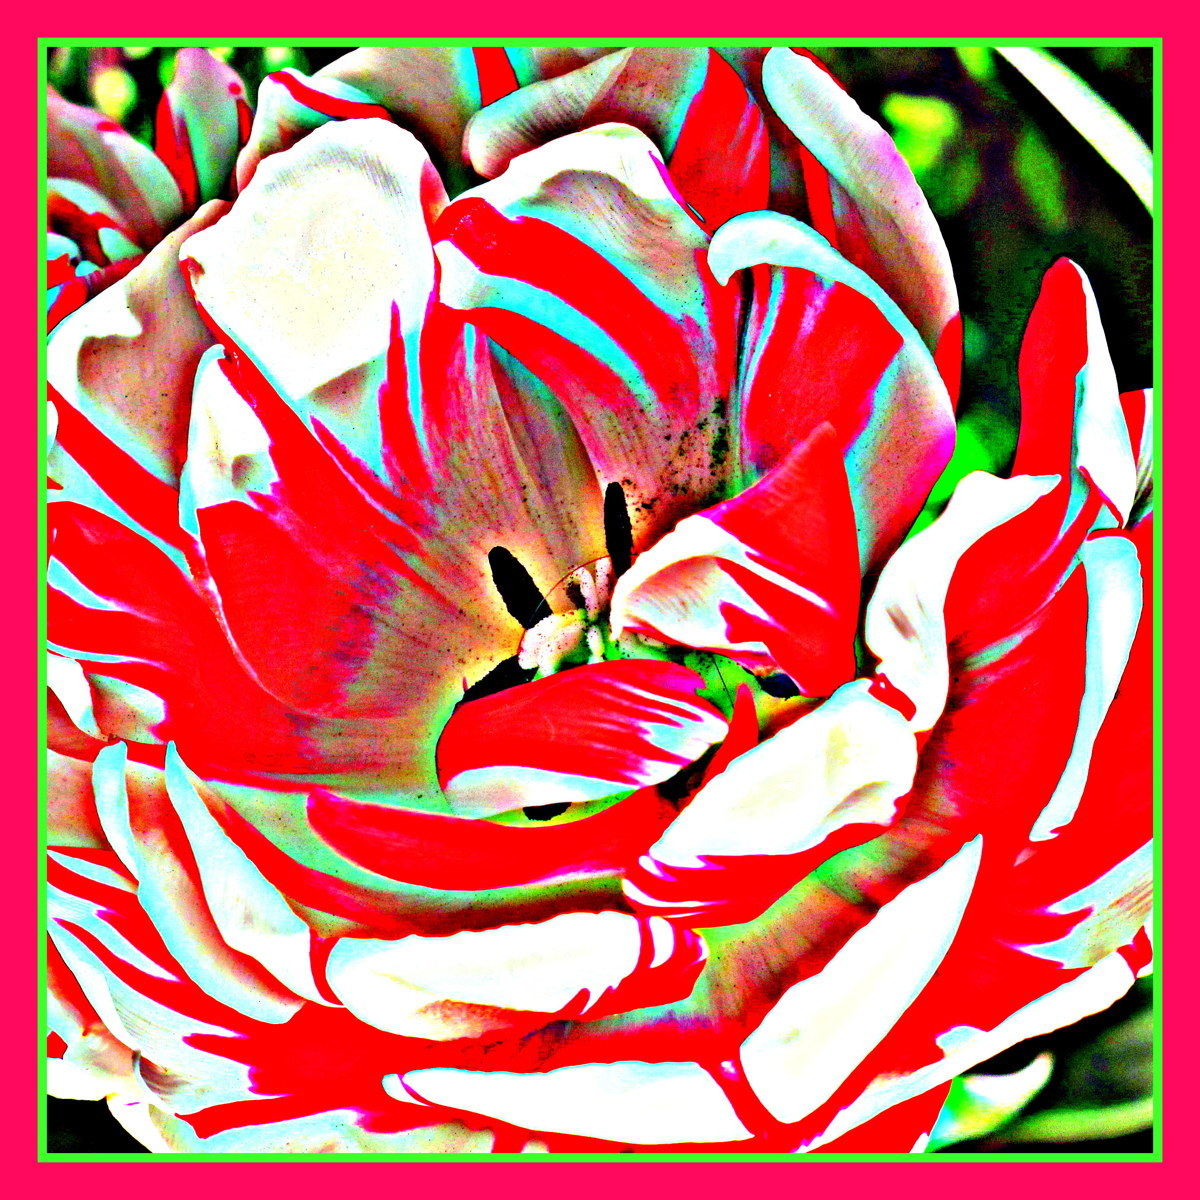 Tulip (large view)